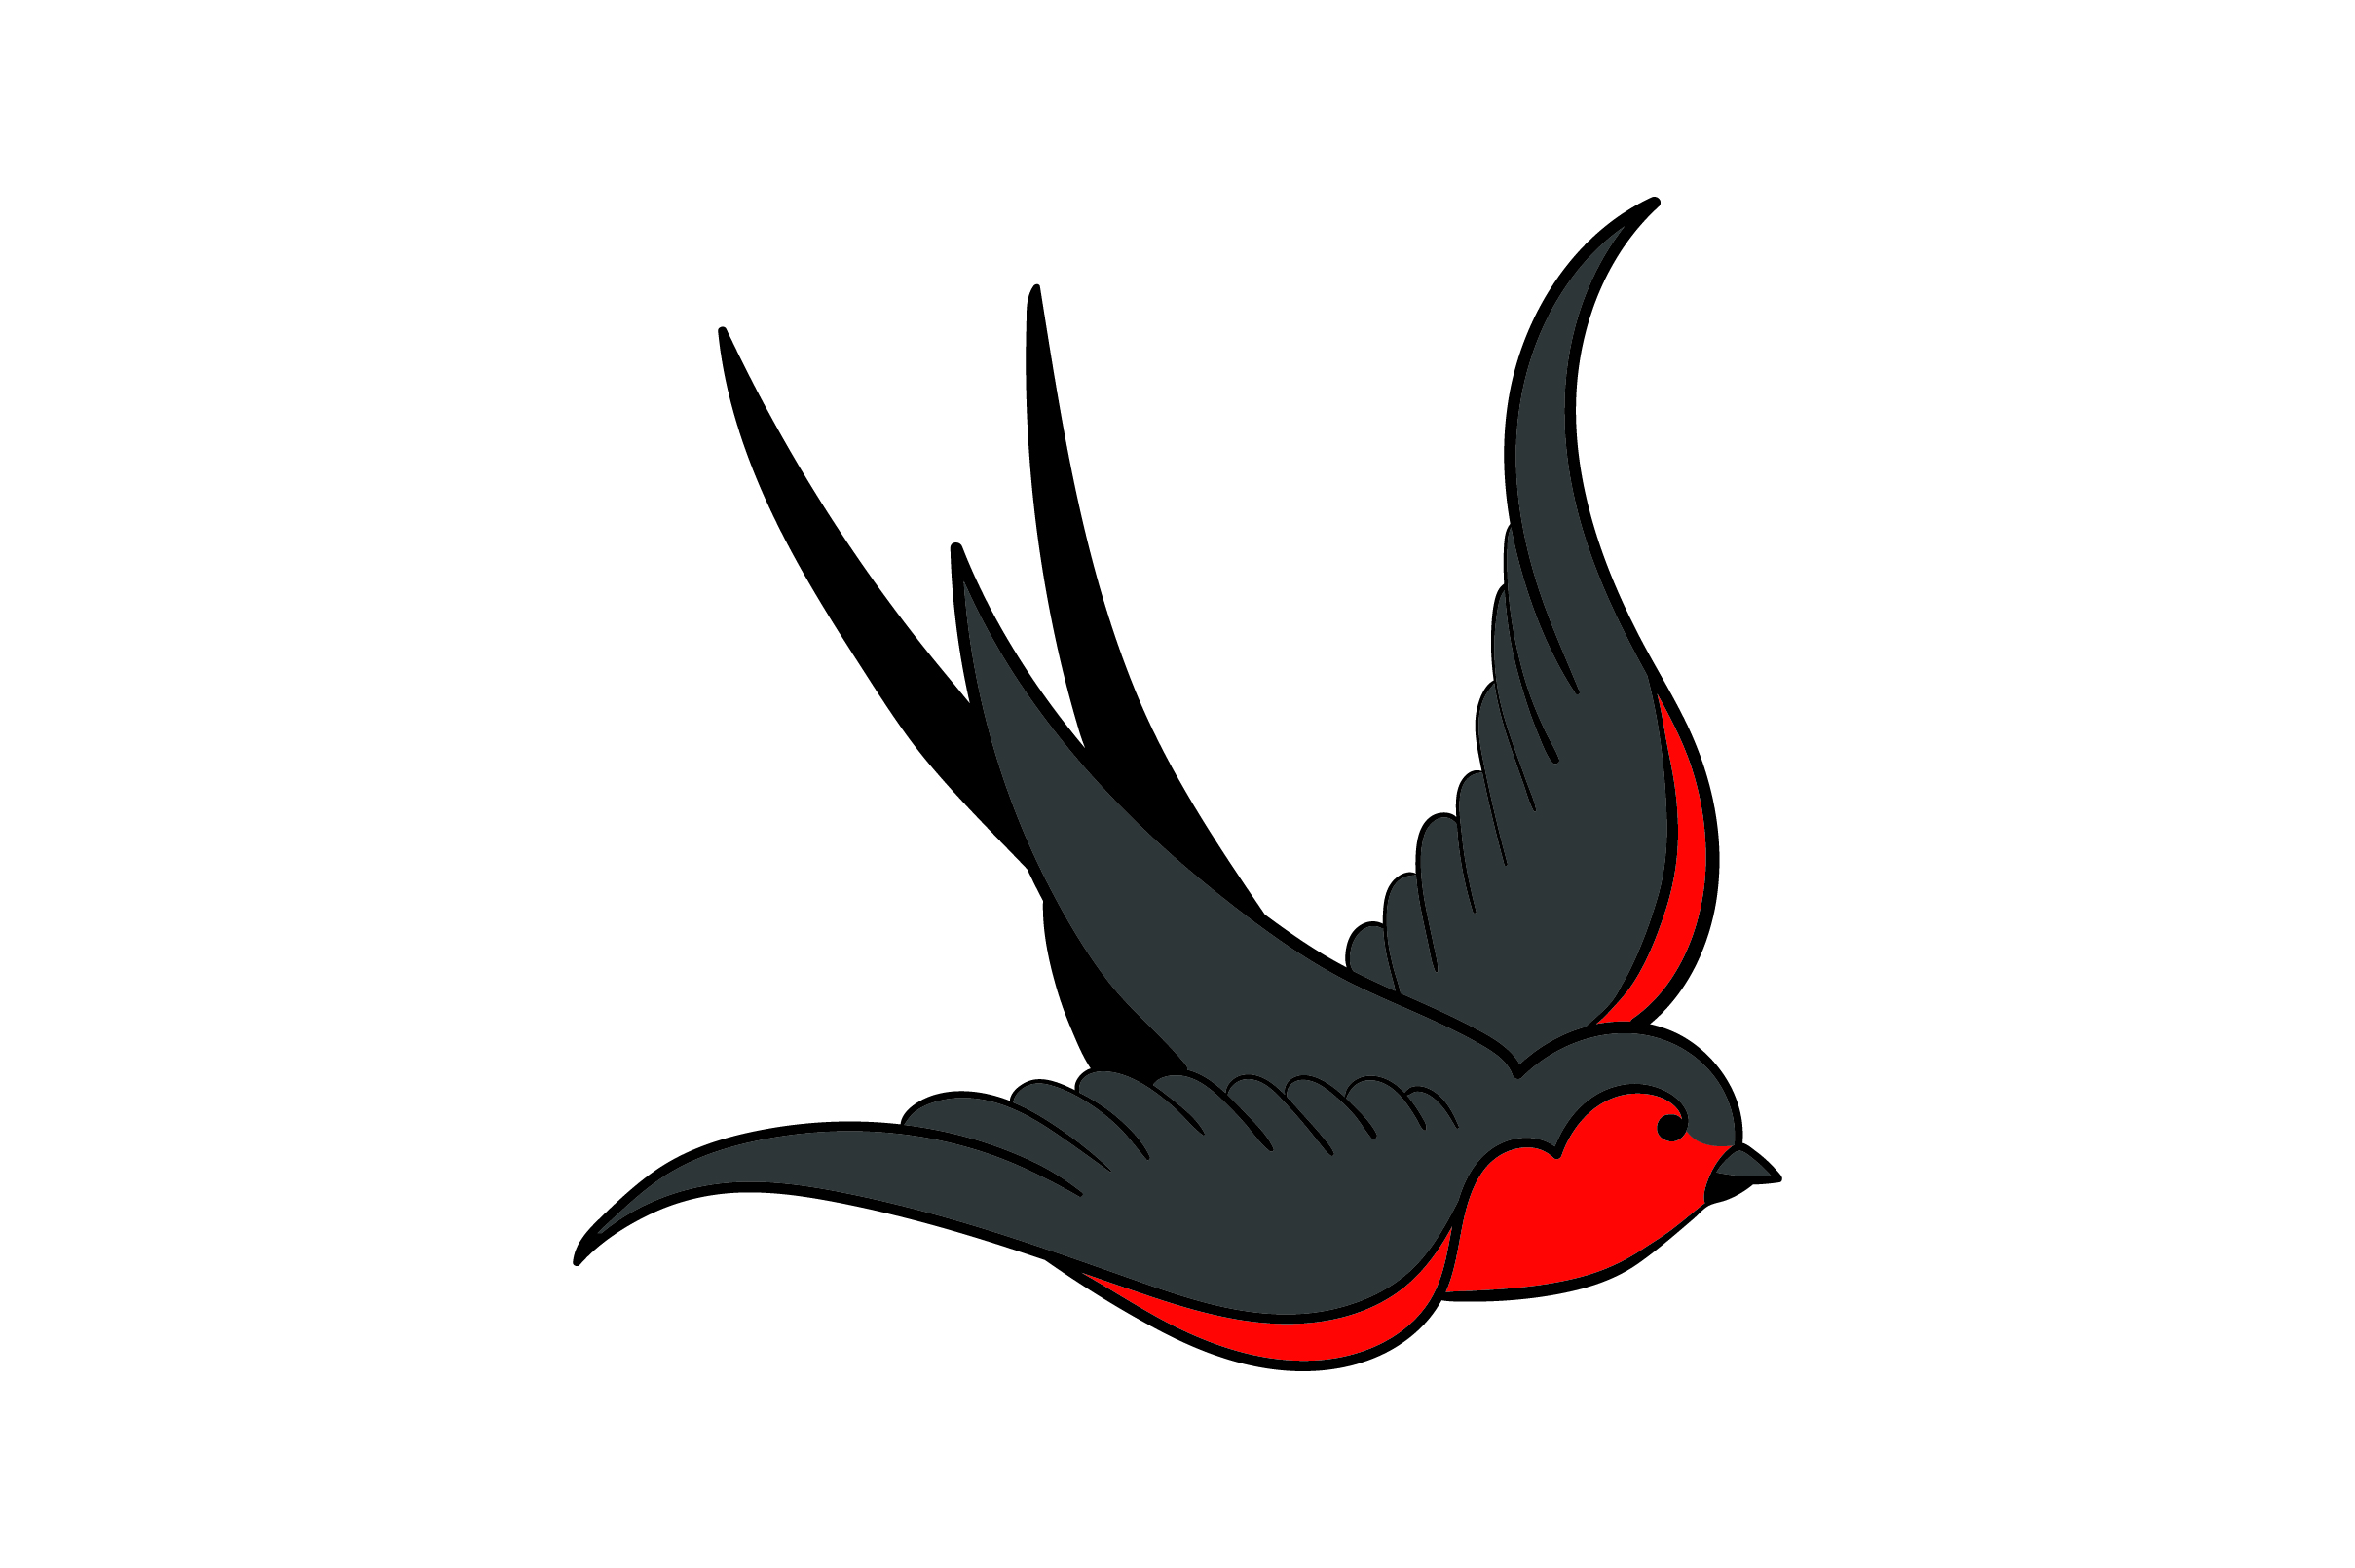 Download Free Colorful Swallow Tattoo Svg Cut File By Creative Fabrica Crafts for Cricut Explore, Silhouette and other cutting machines.